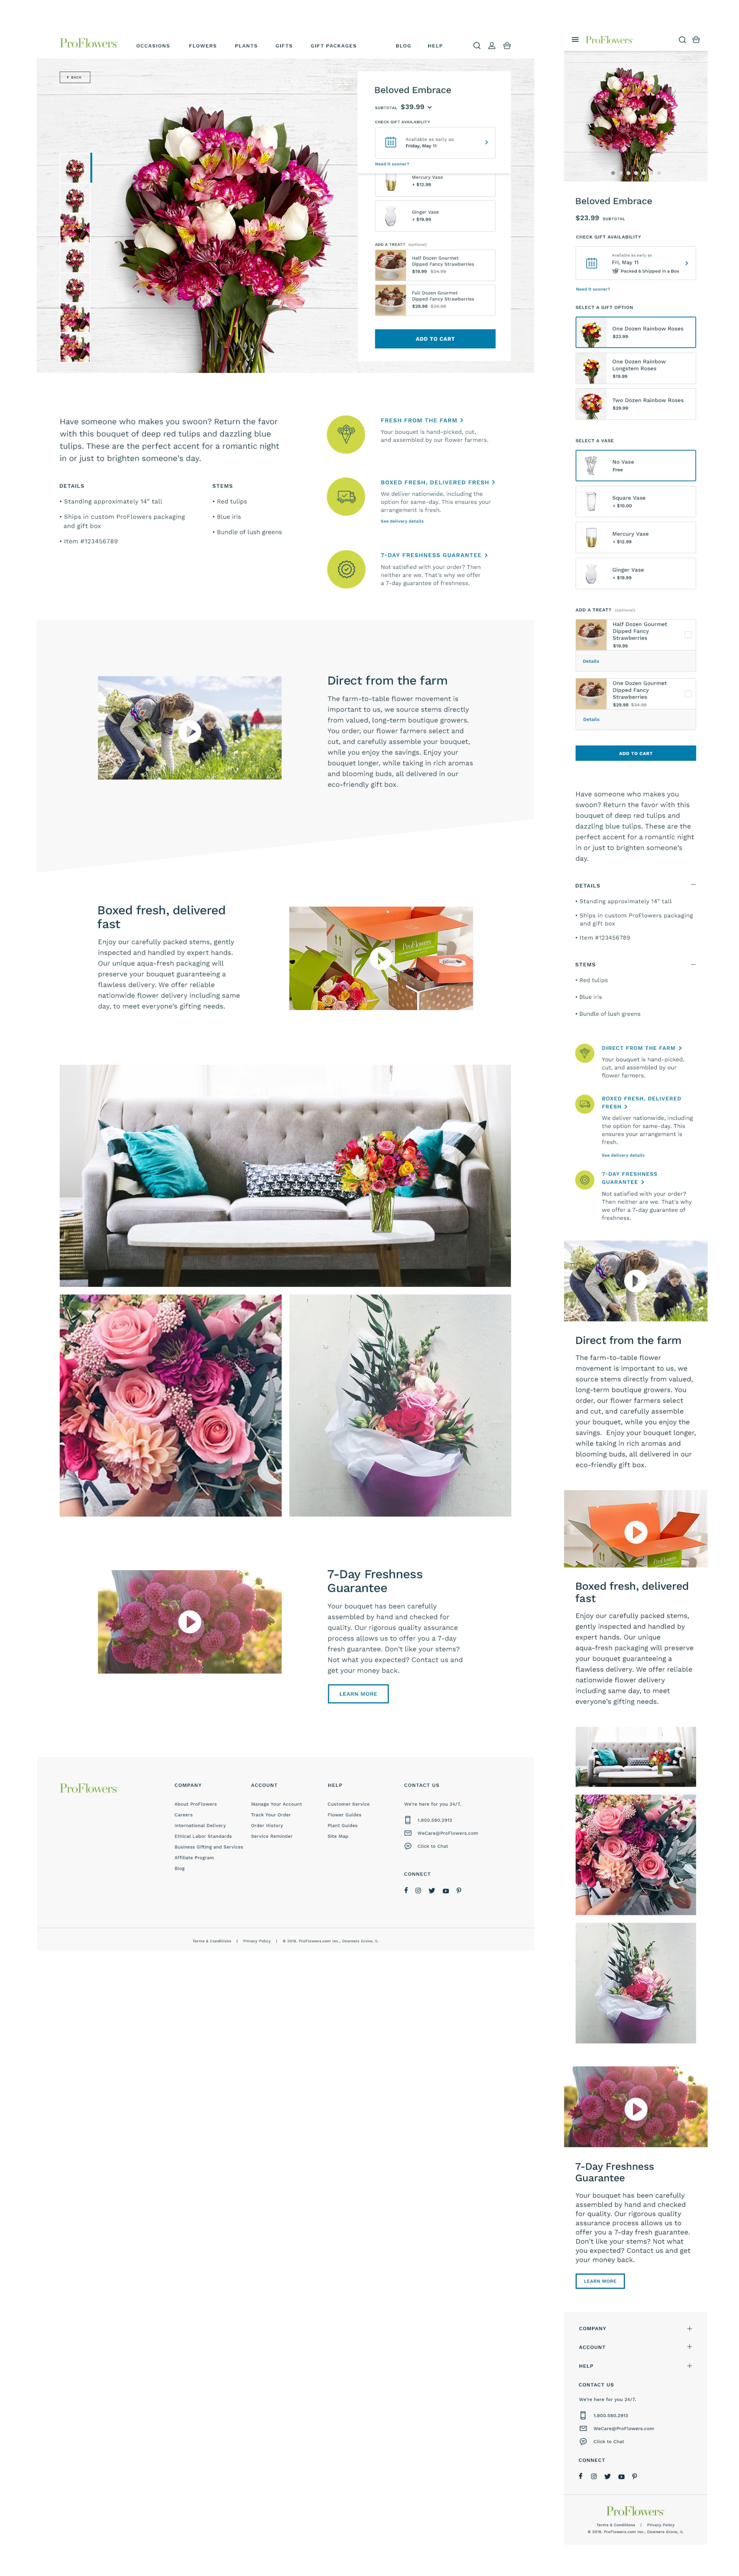 ProFlowers Product Page